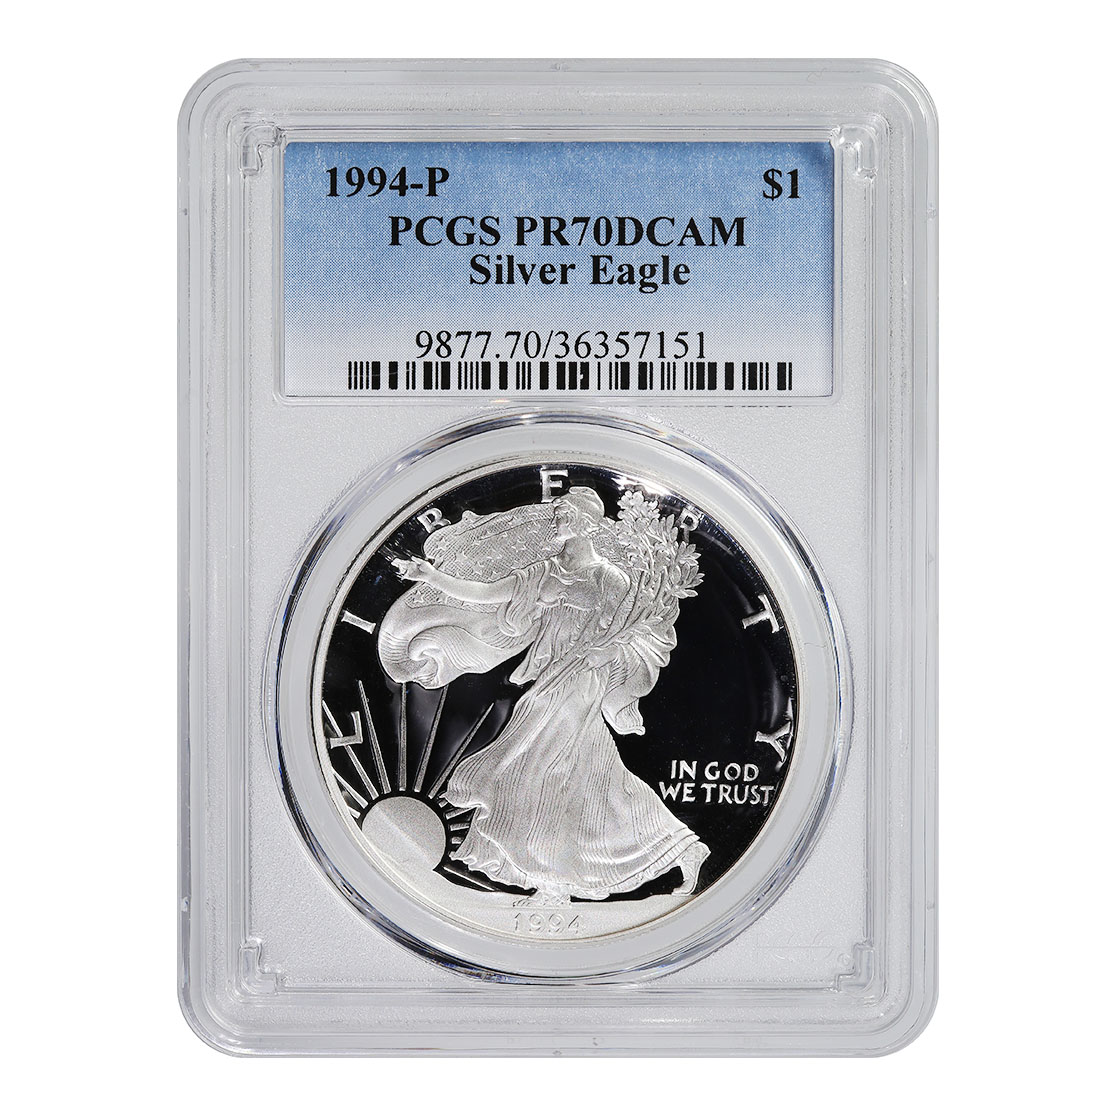 Certified Proof Silver Eagle 1994-P PR70DCAM PCGS